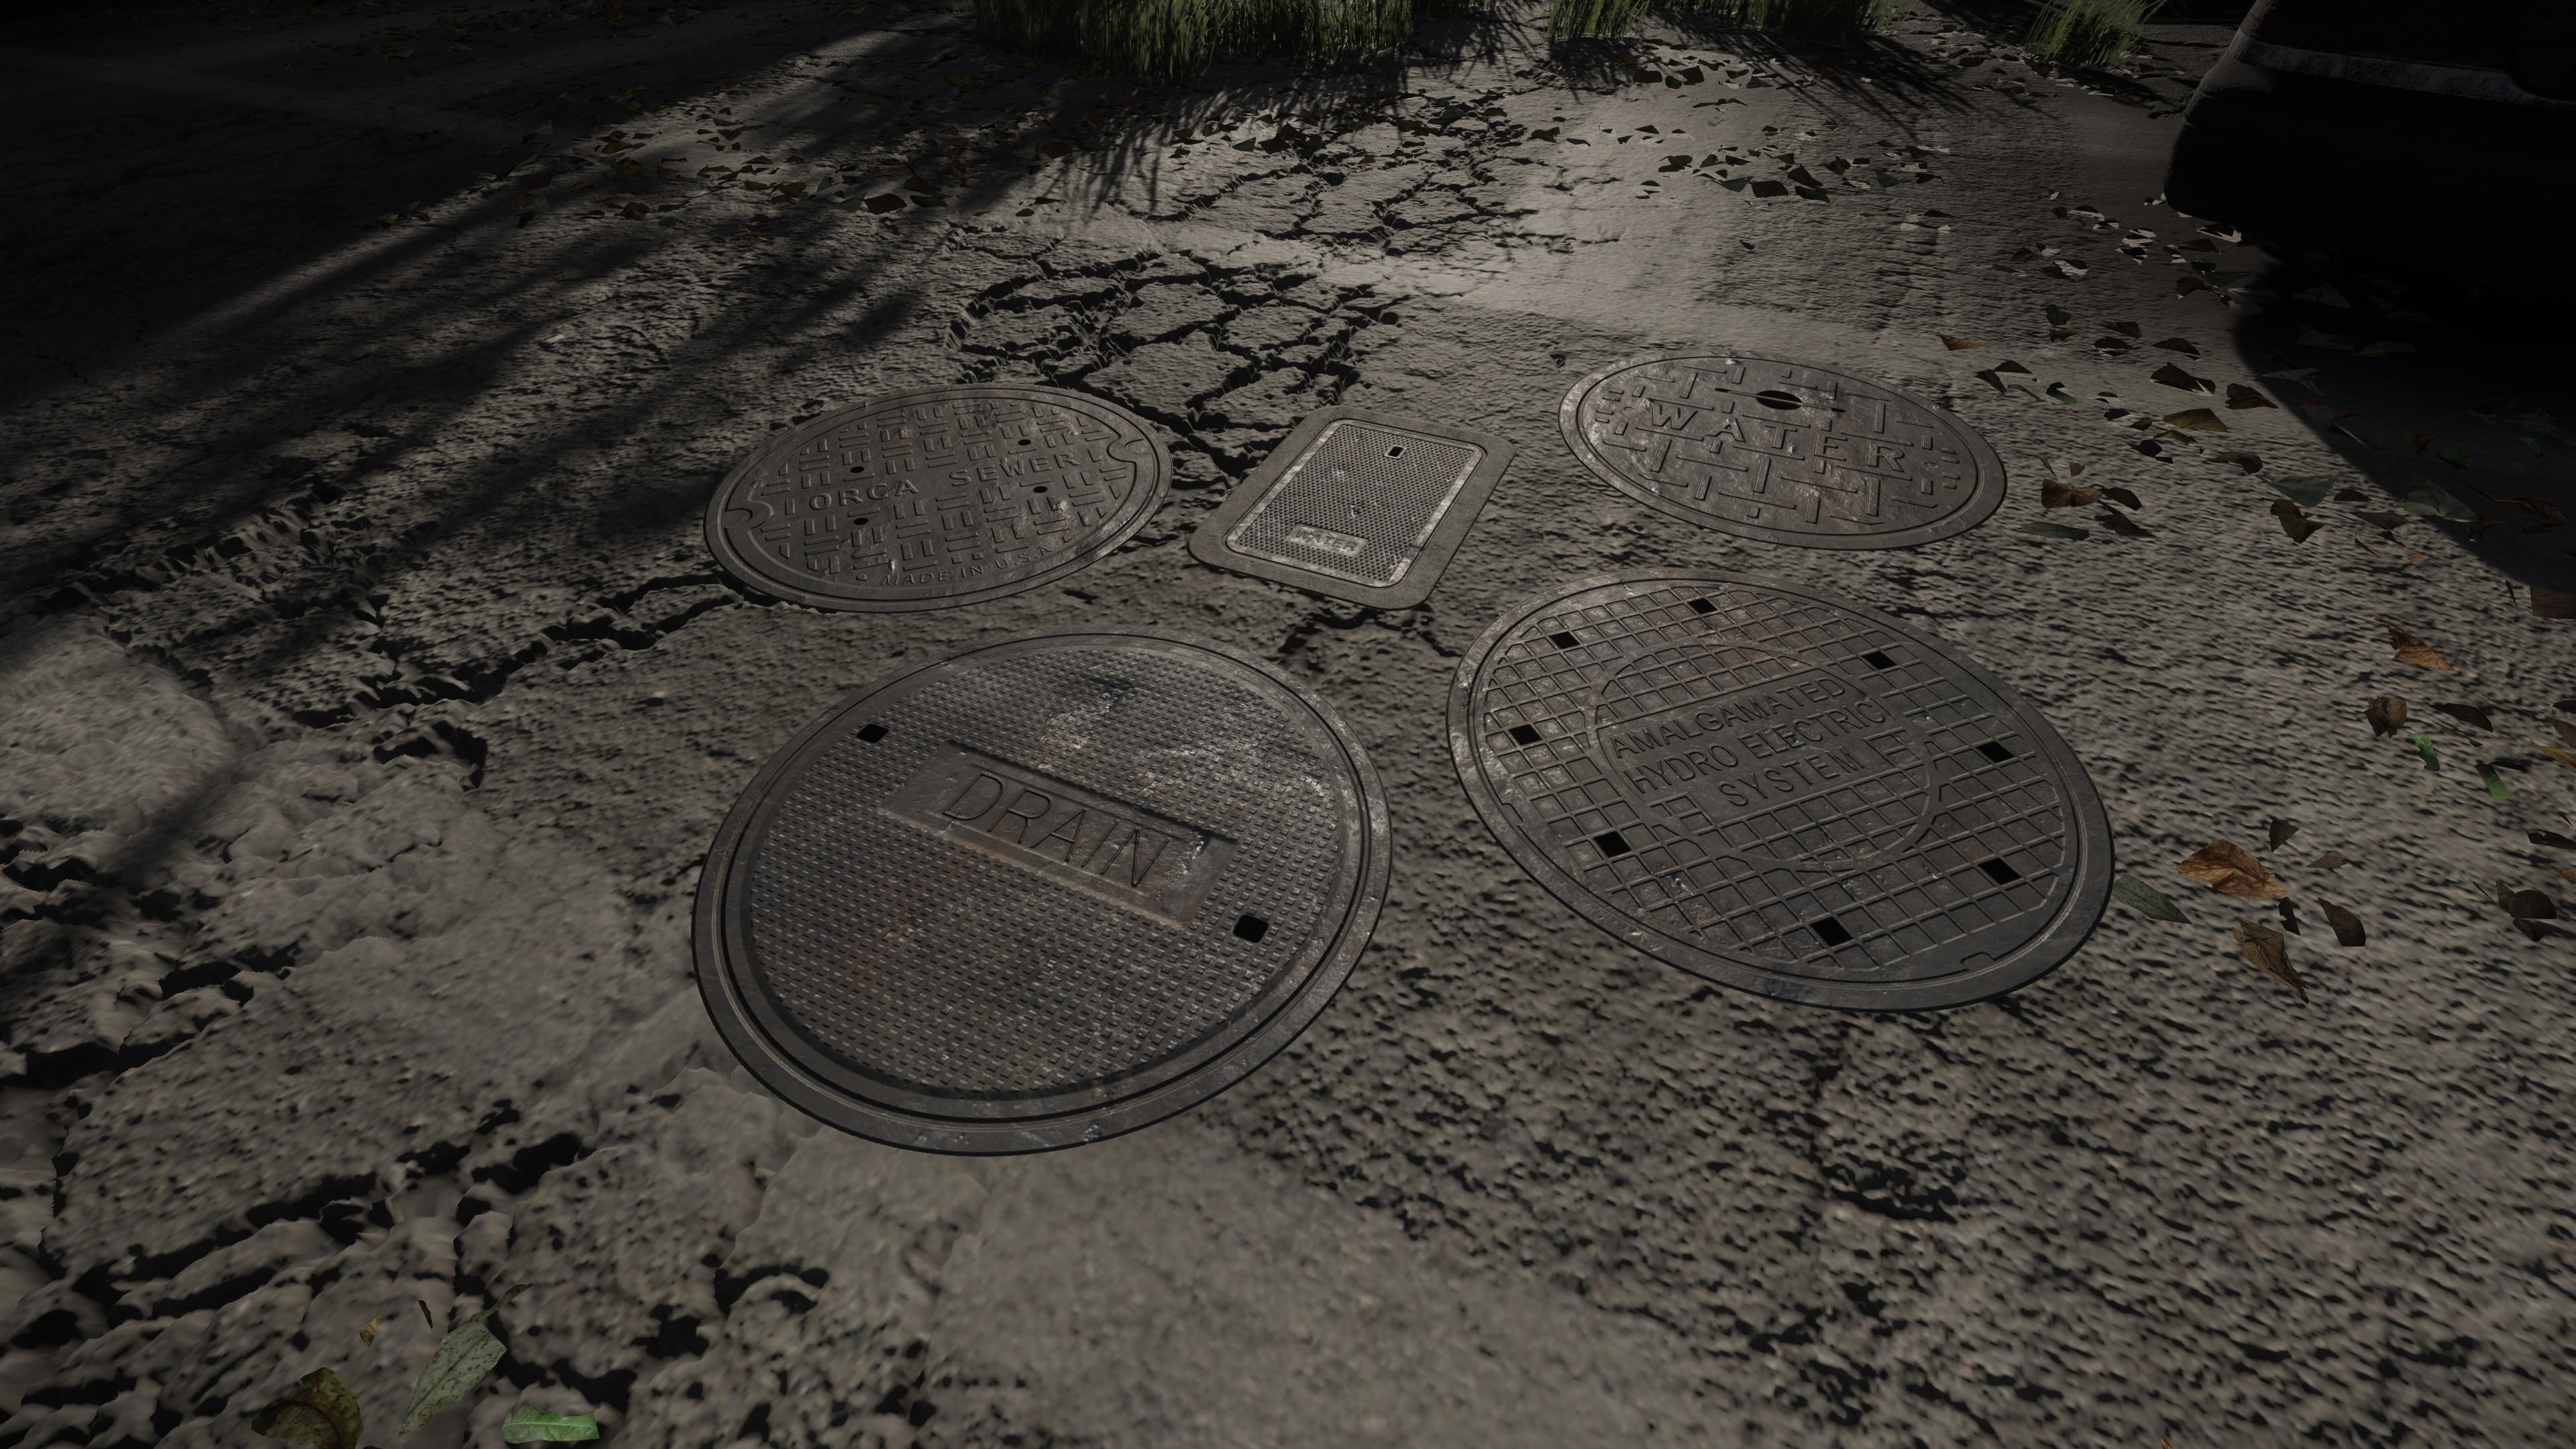 These Manhole Covers help make the city feel more realistic and immersive. All 10 decals are on 1 texture sheet.